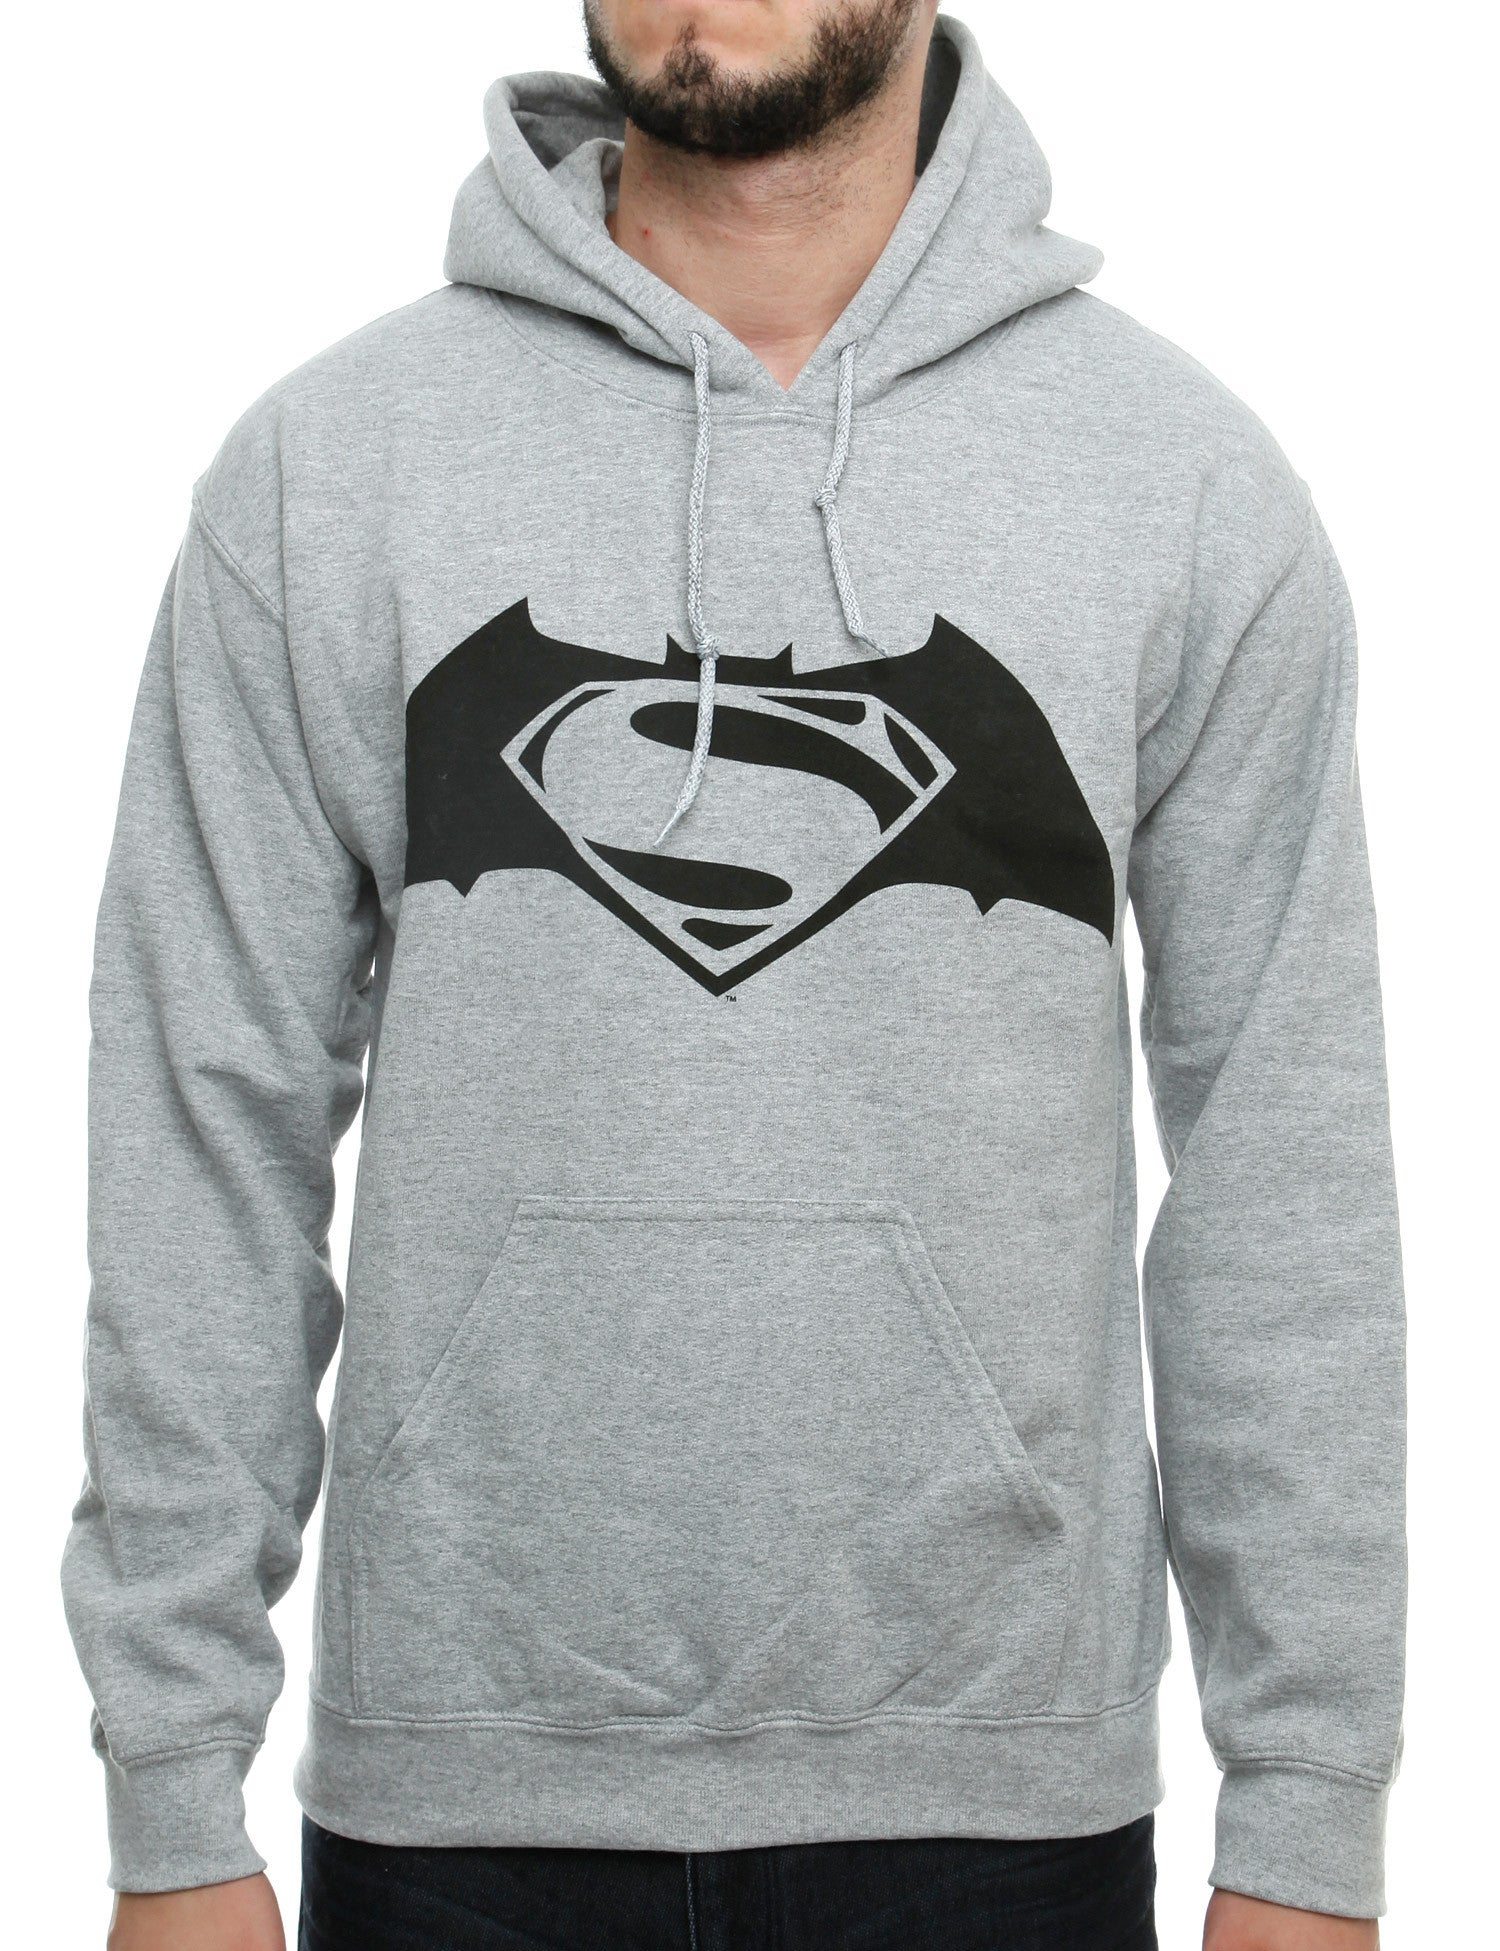 Heroes Hoody Superman SUH01 Grey